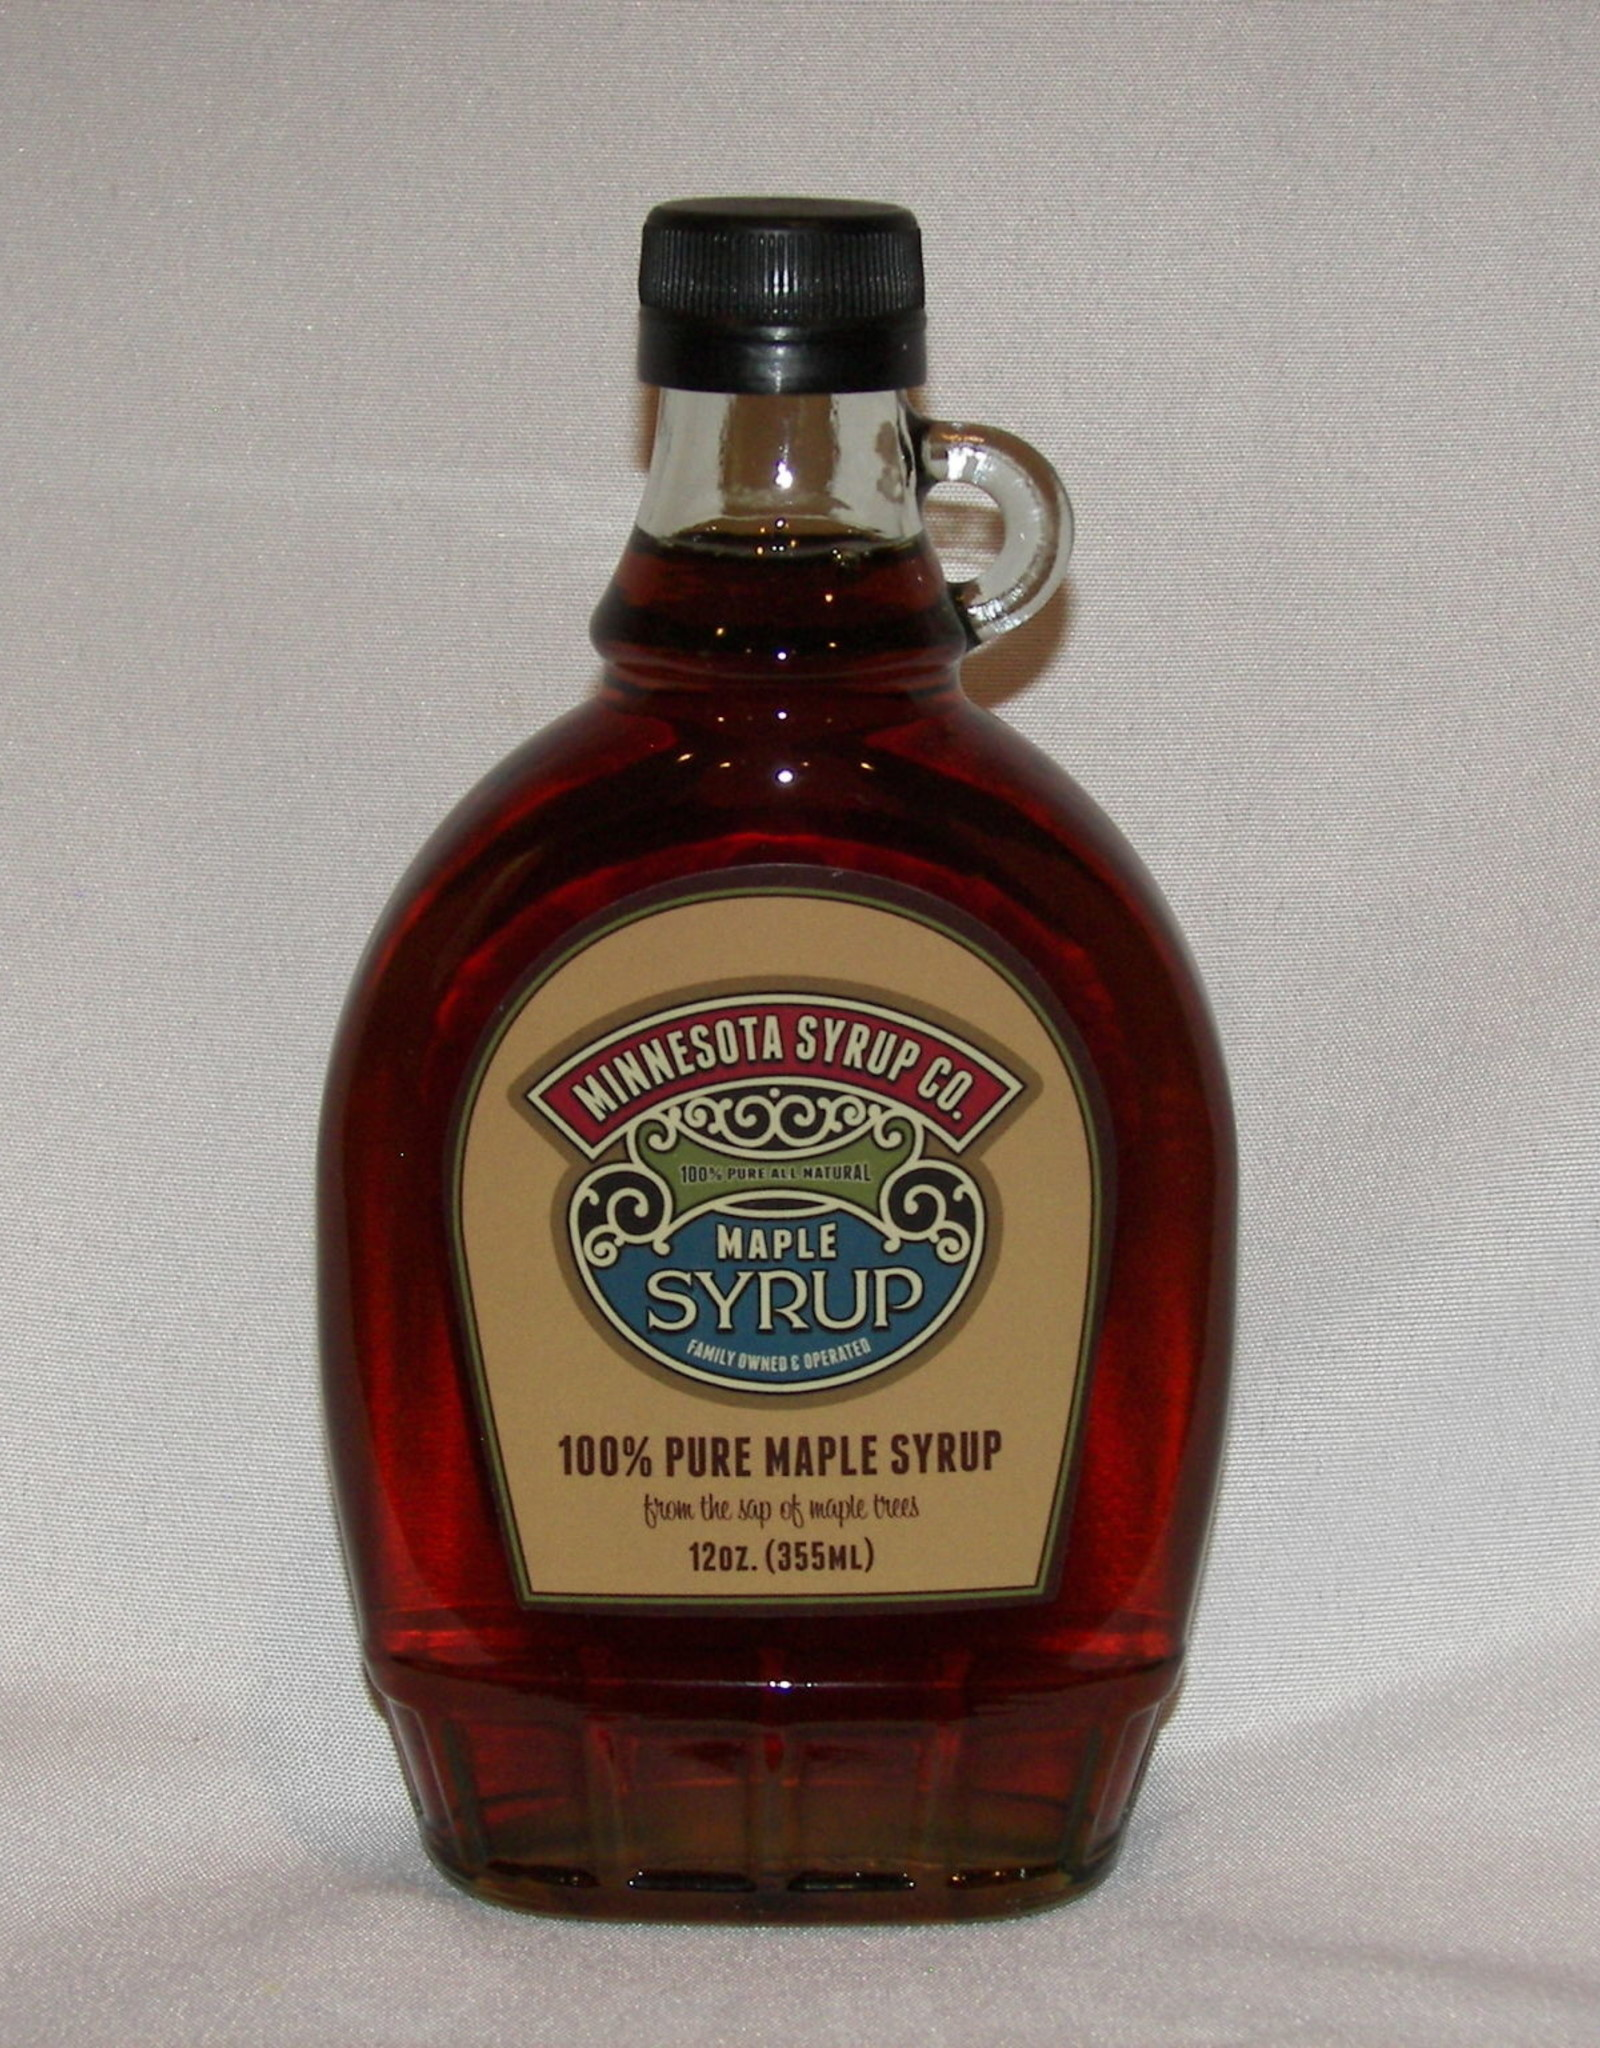 MN Syrup Co. MN Syrup Co. 12oz